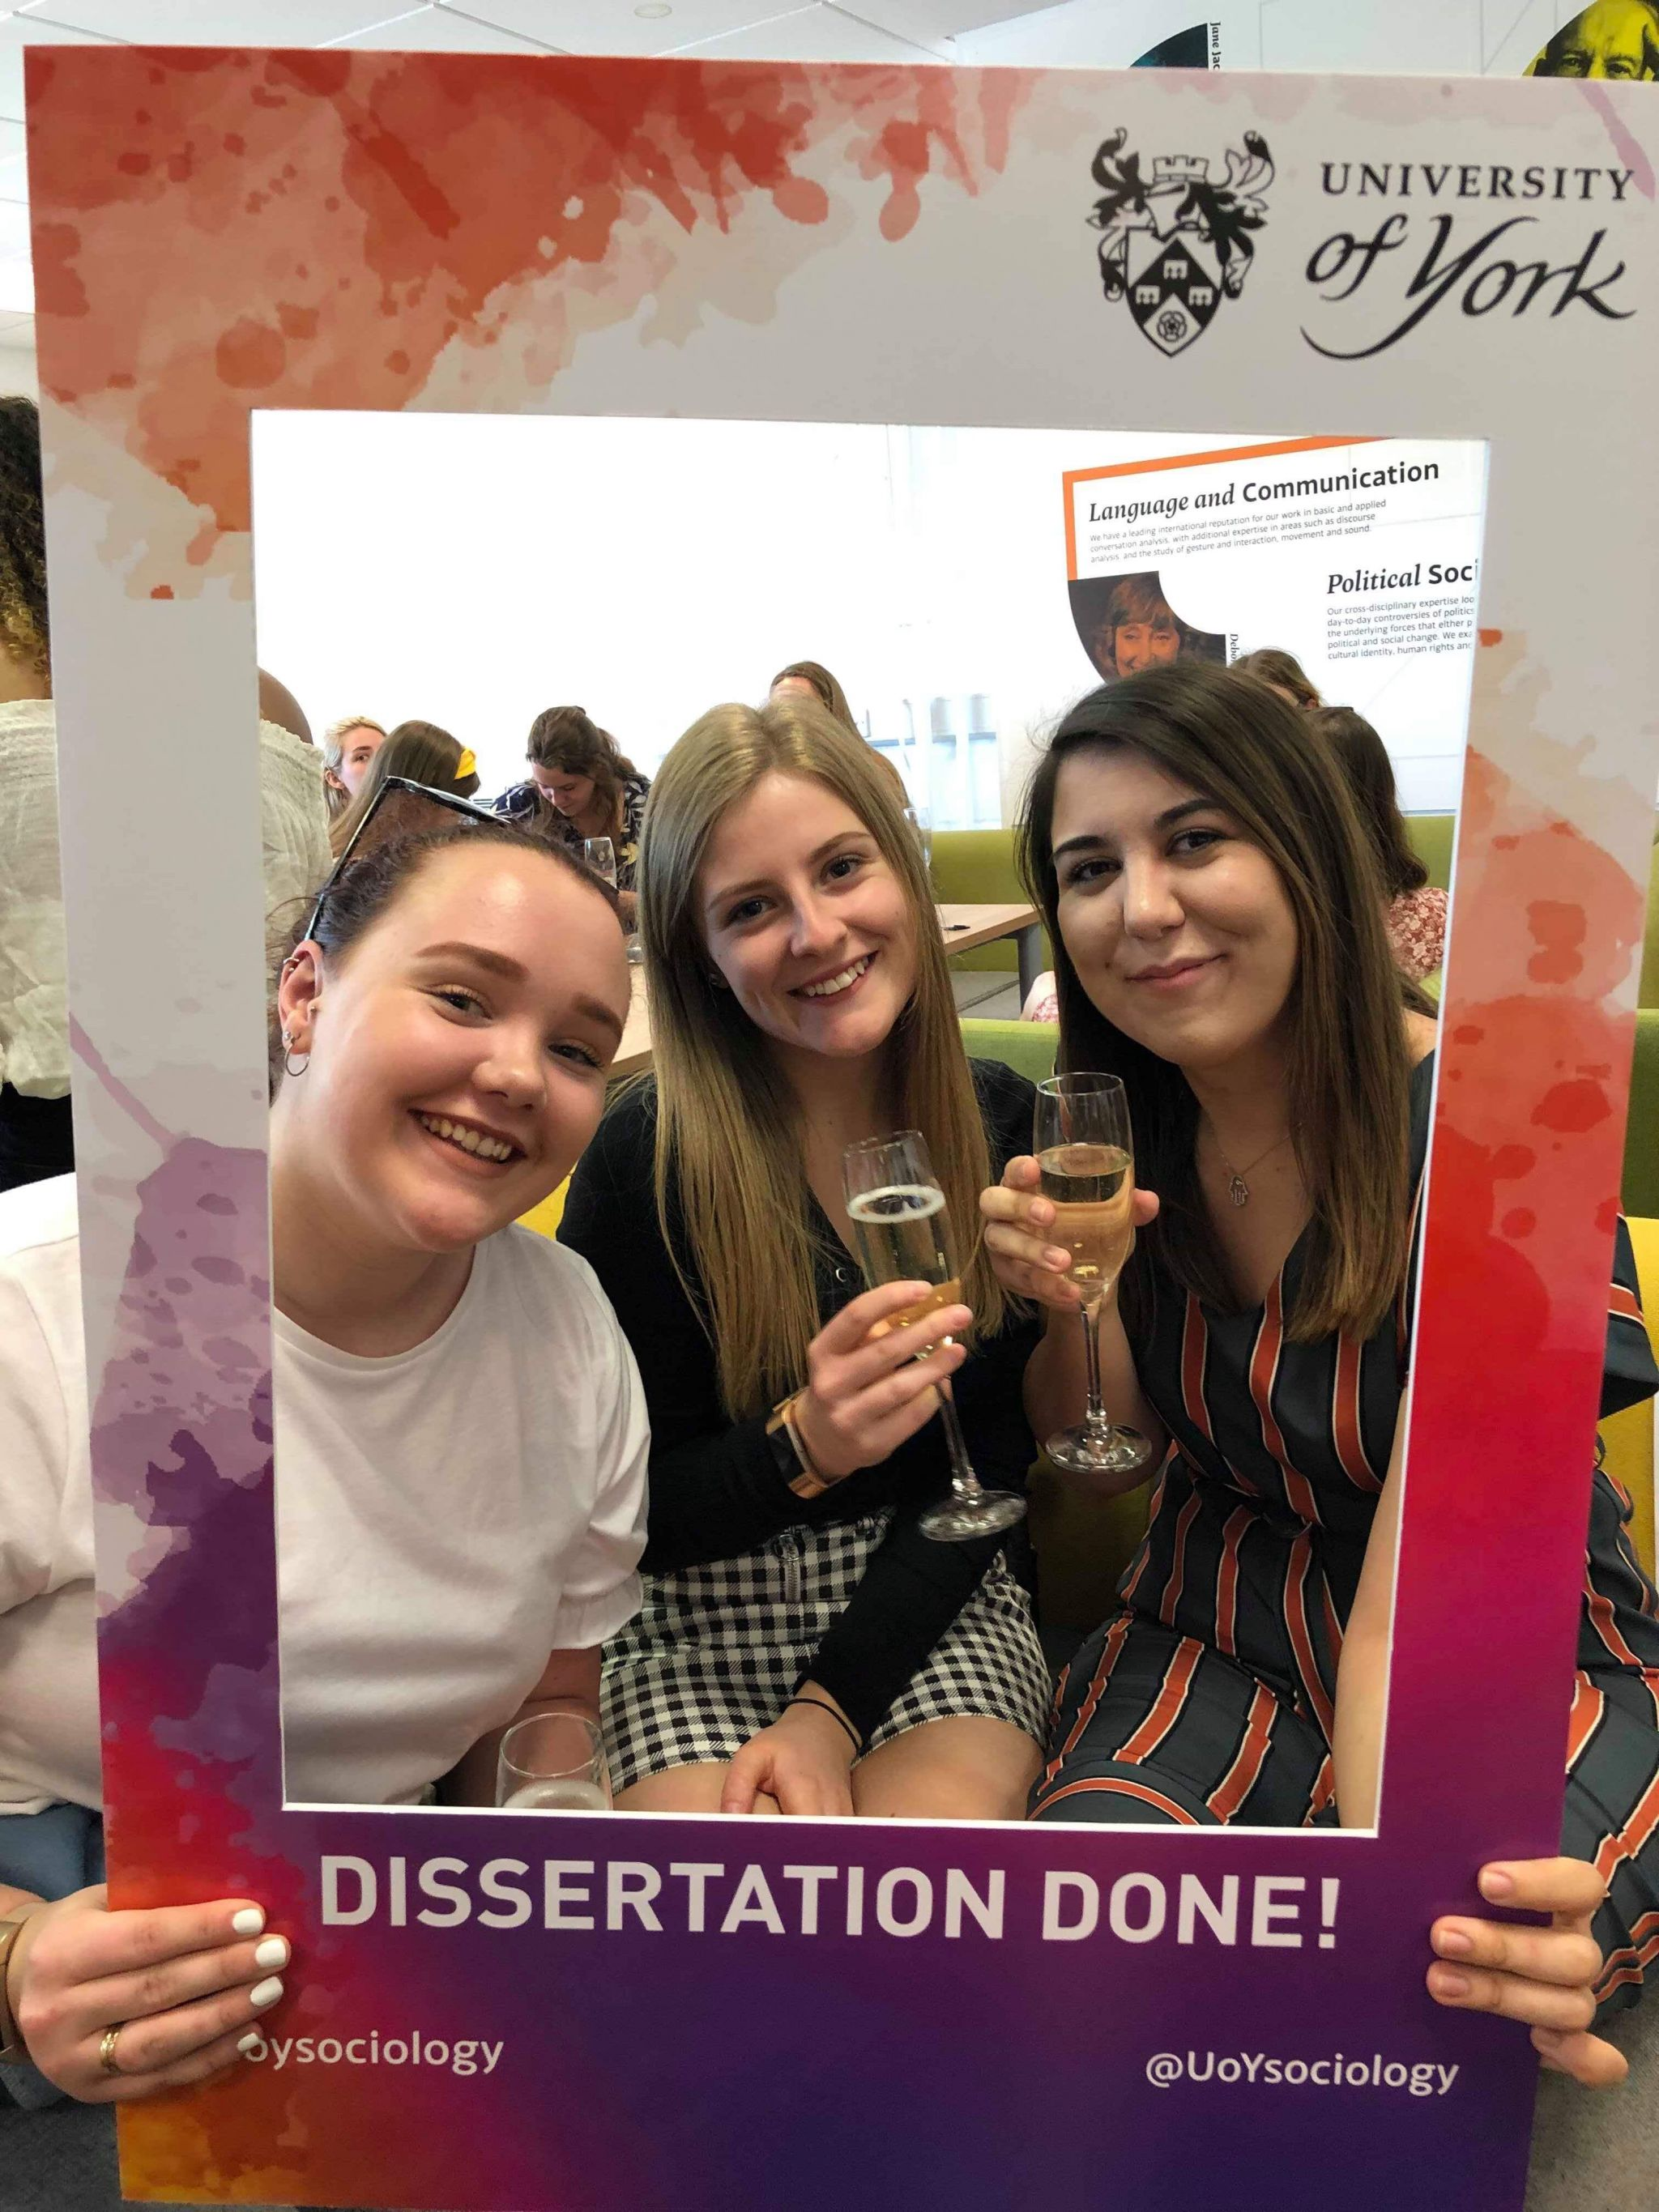 girls and I with dissertation done photo frame prop